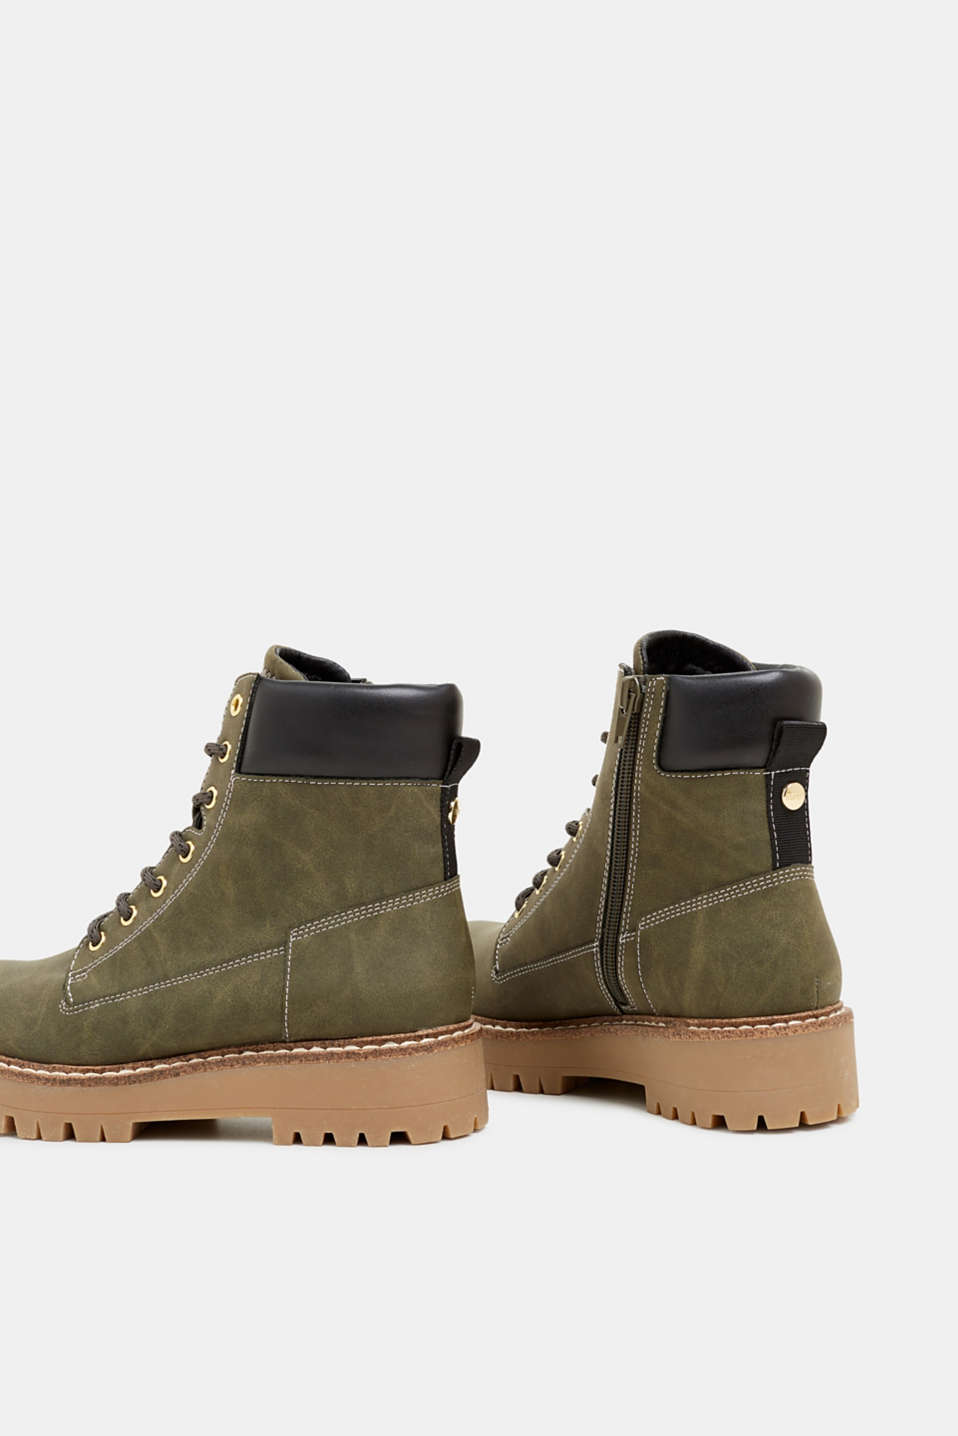 Lace-up boots in a rustic look, DARK KHAKI, detail image number 5